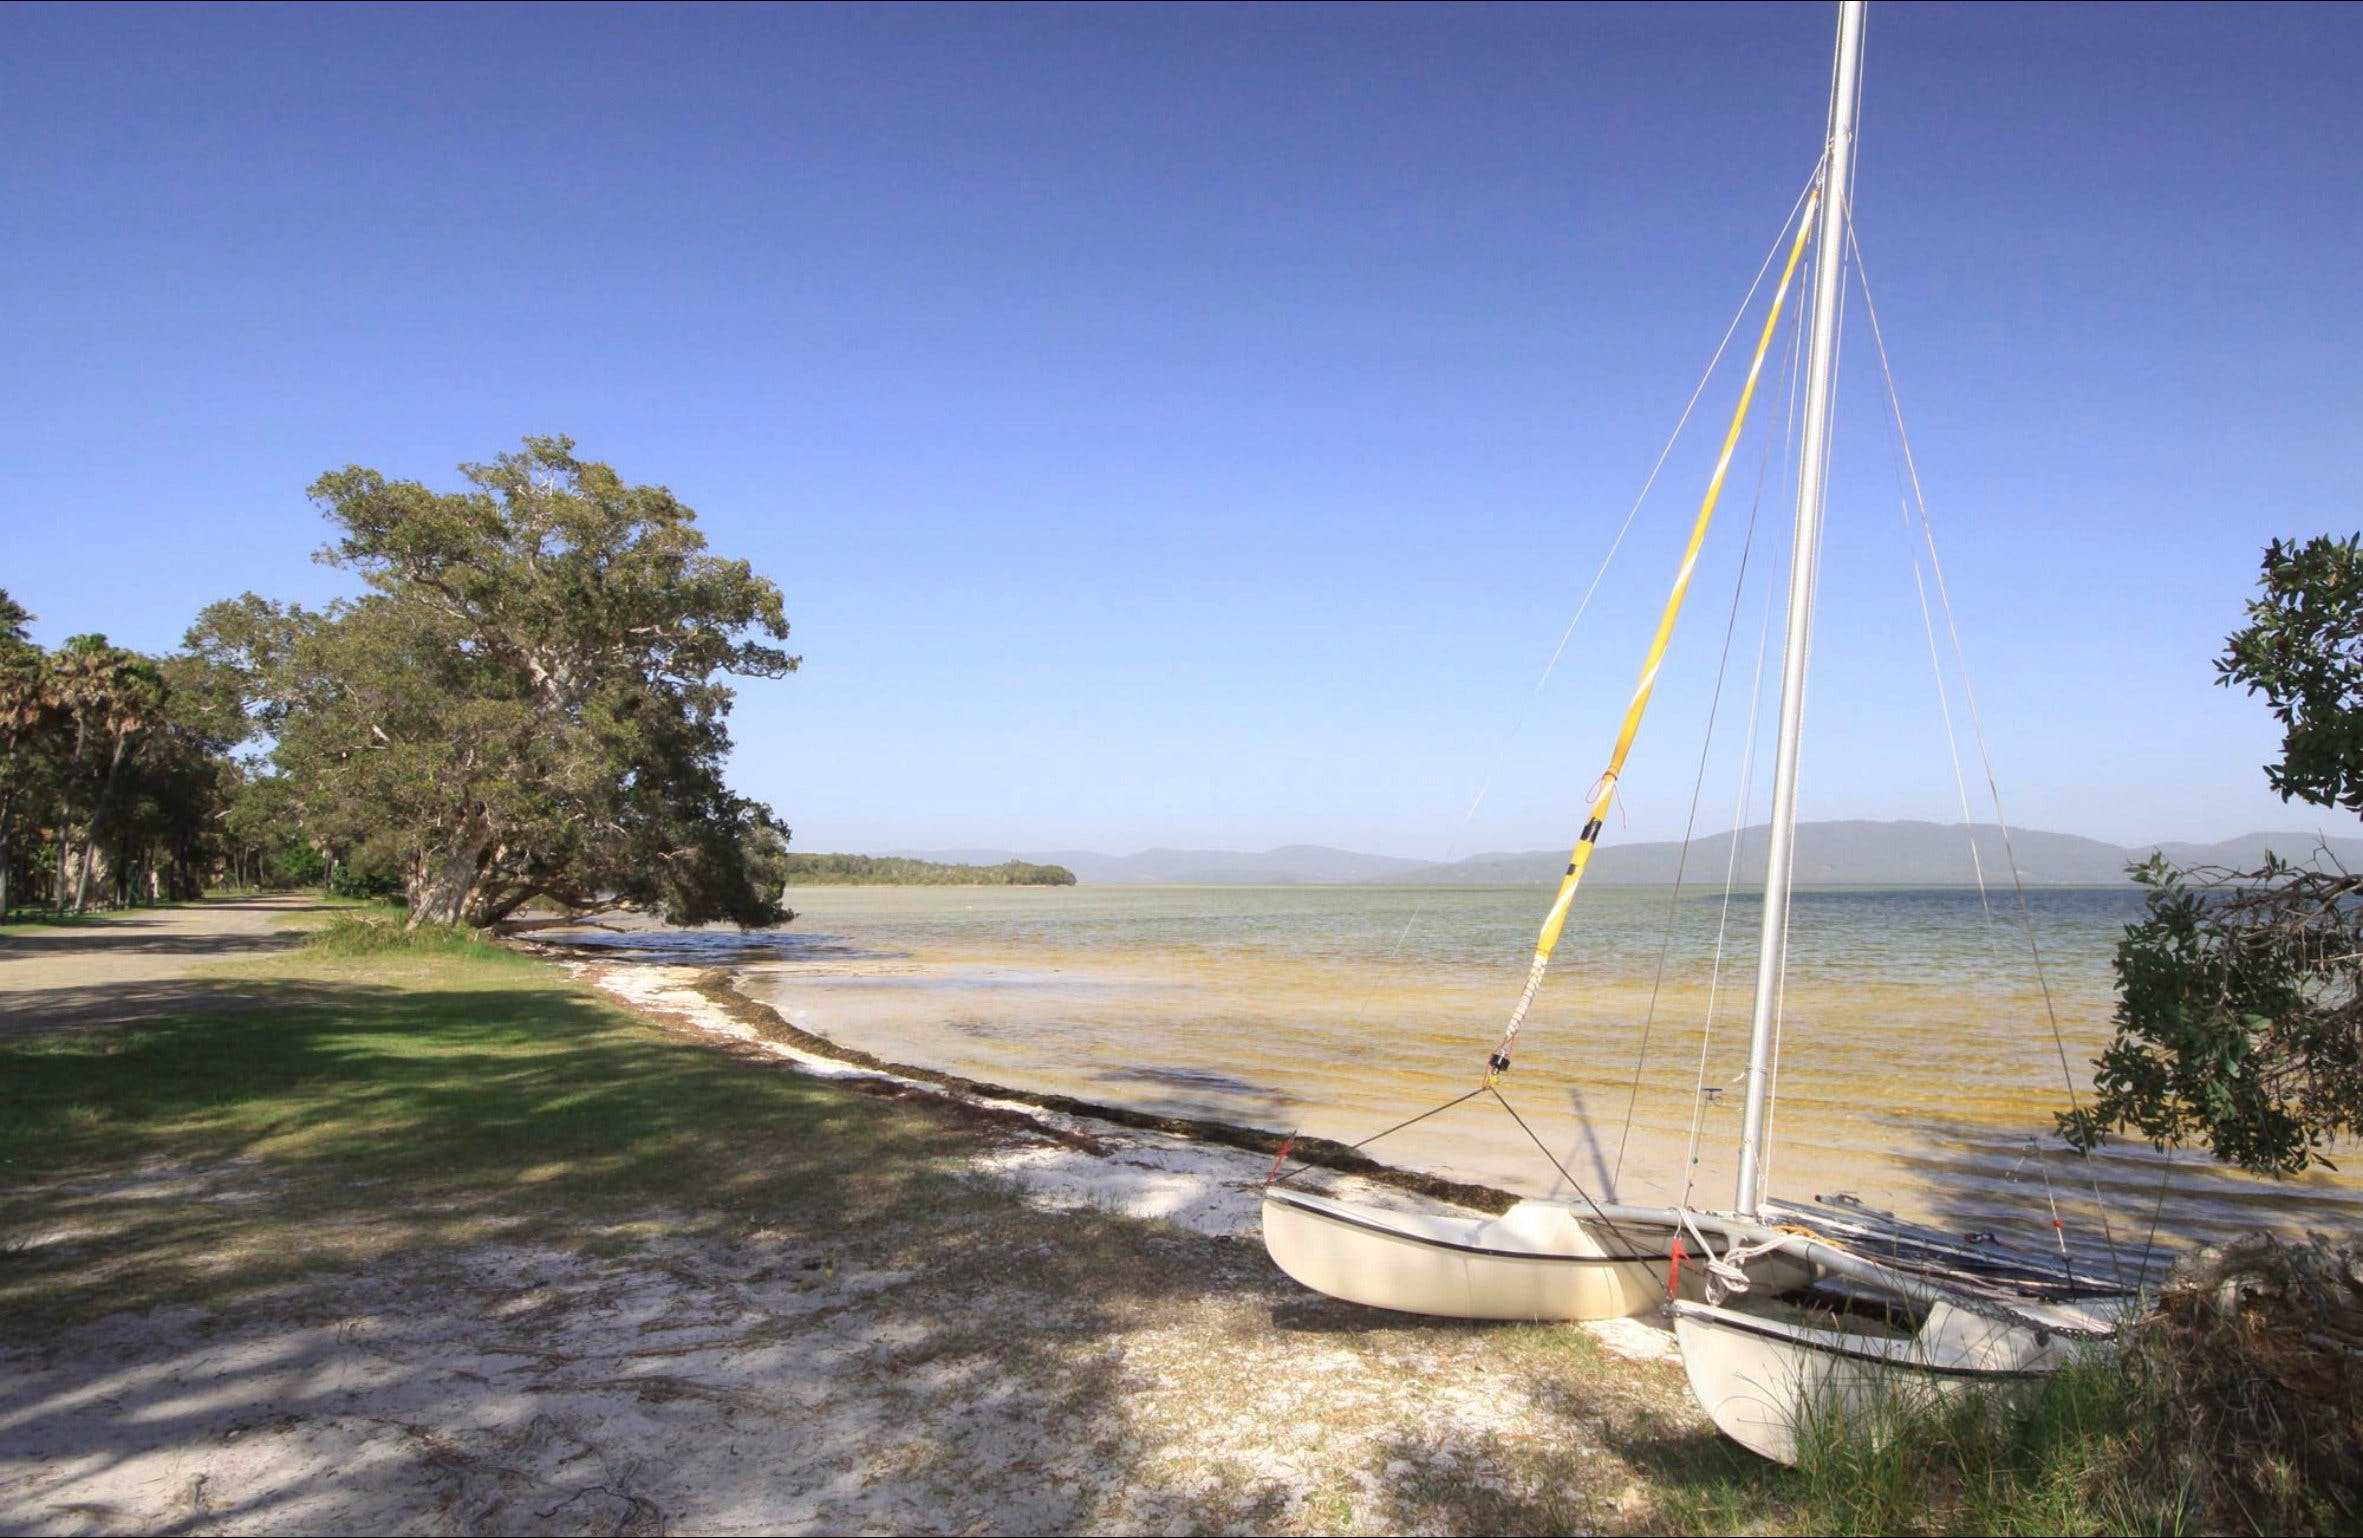 Sailing Club picnic area - Accommodation Noosa